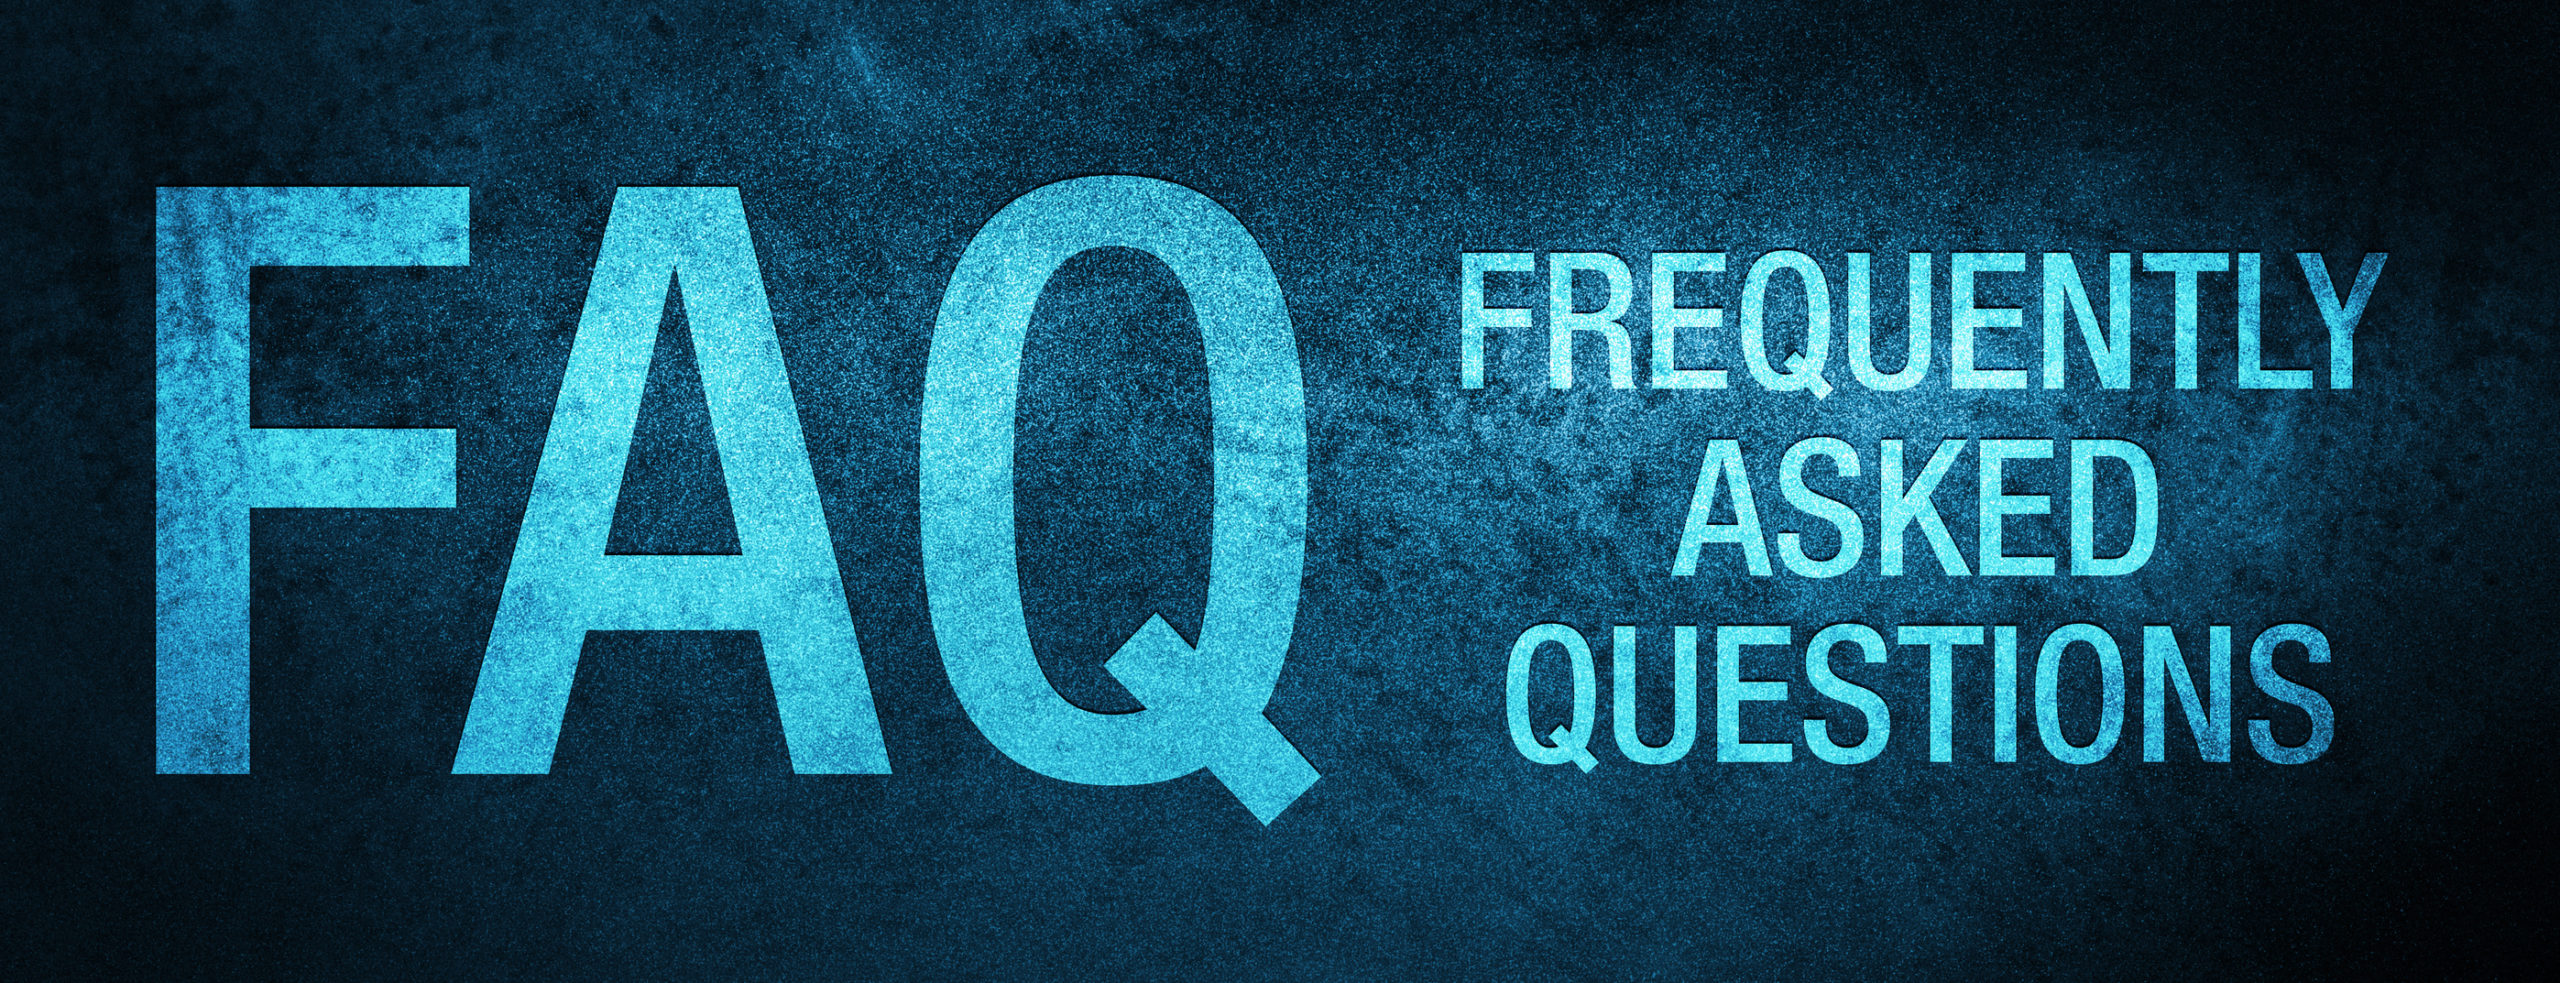 FAQ frequently asked questions special blue banner background - Crosslin